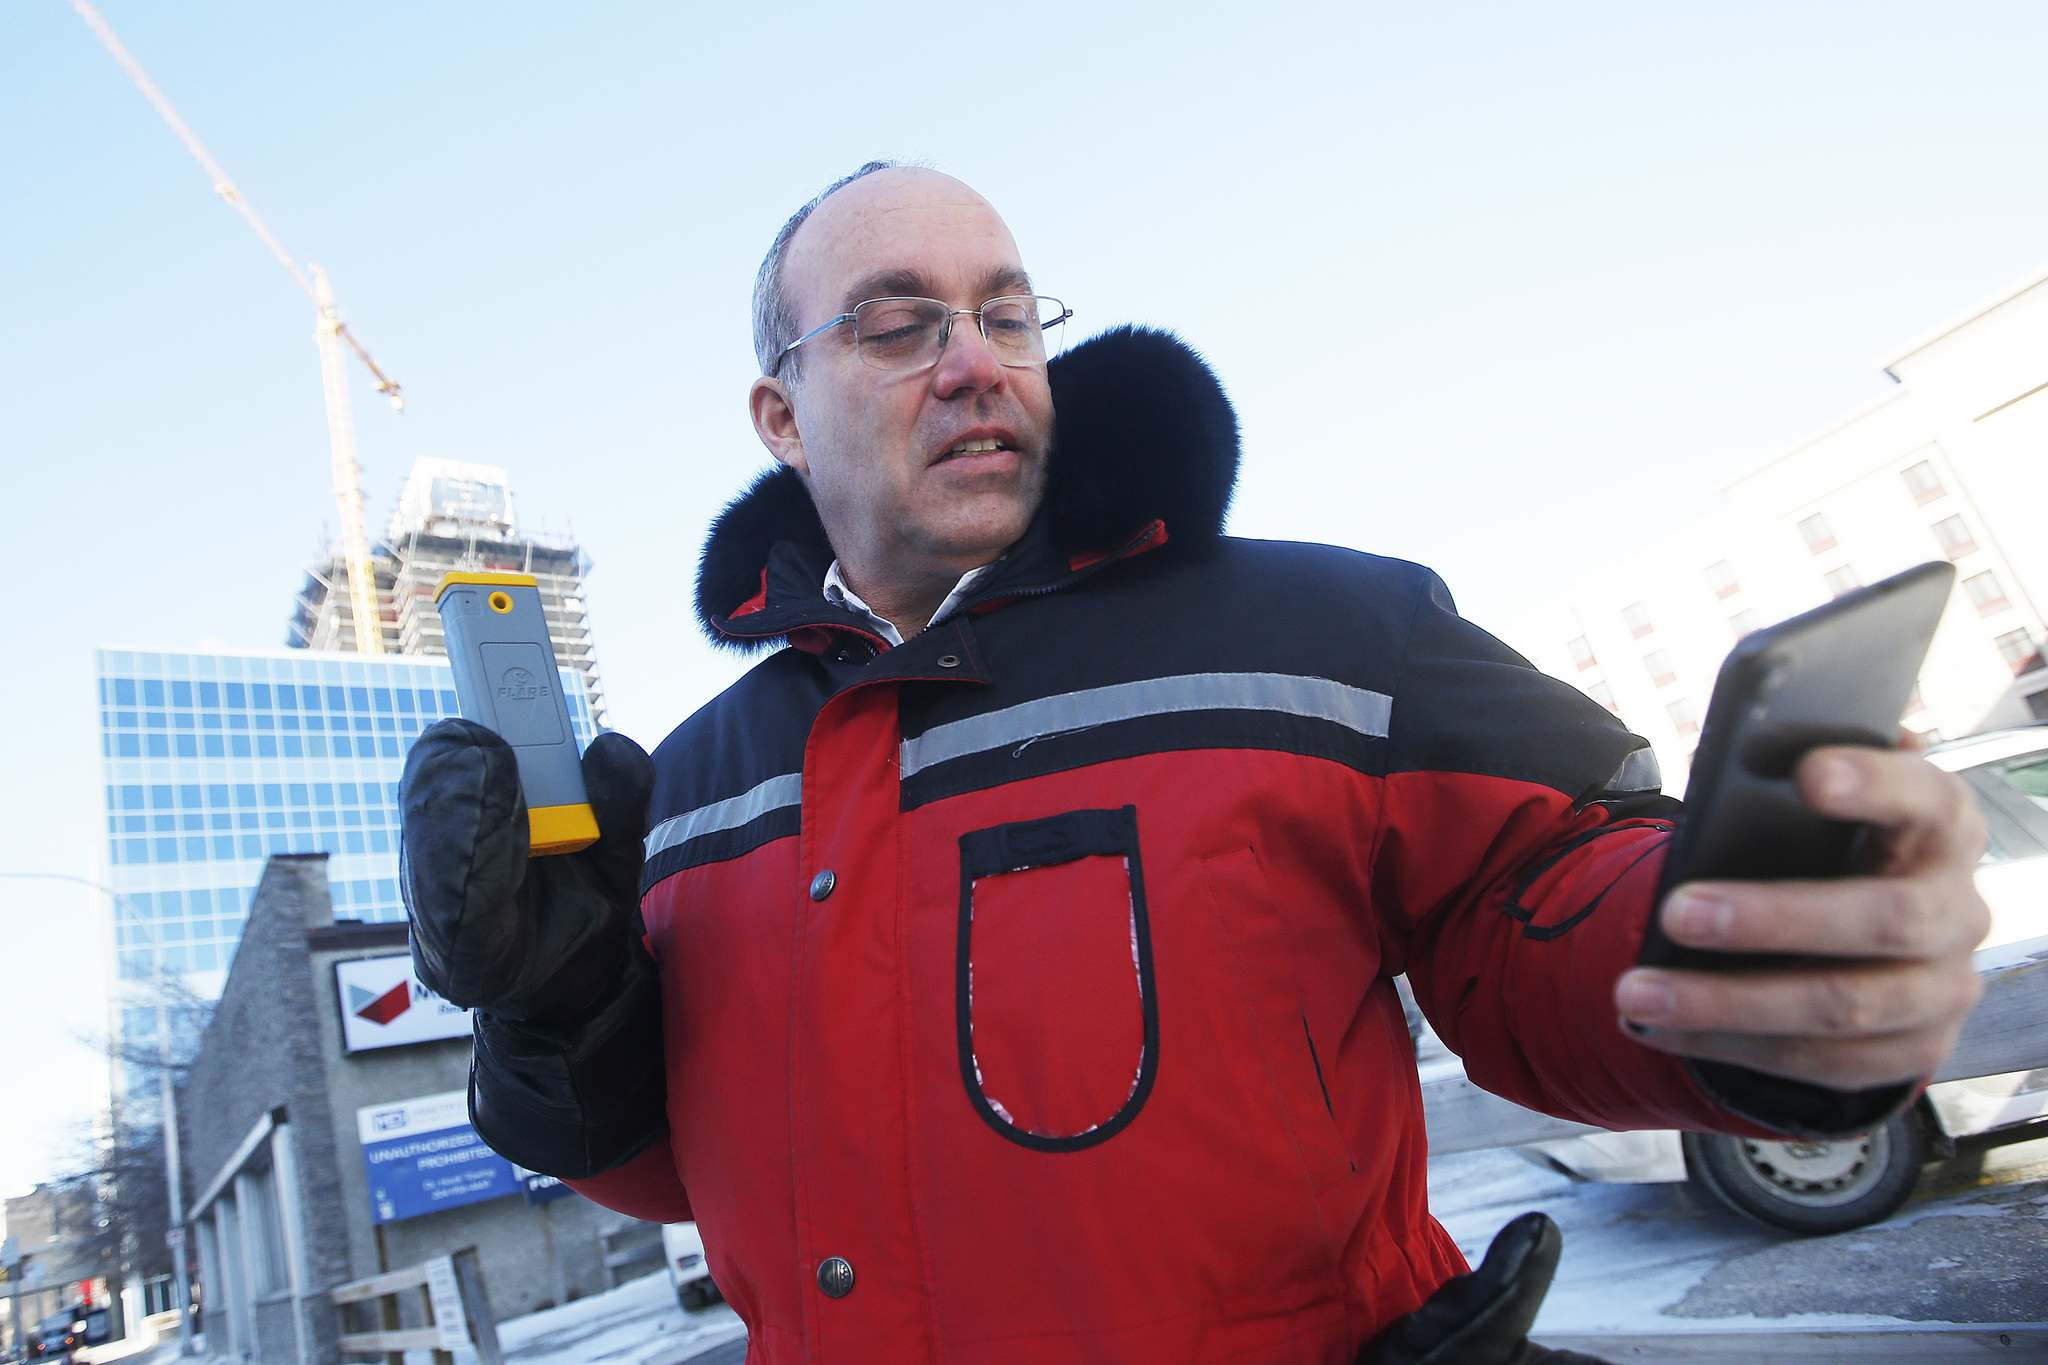 JOHN WOODS / WINNIPEG FREE PRESS</p><p>Solara's Tom Tessier demonstrates the Flare in Winnipeg Wednesday. The small device uses Bluetooth to turn an ordinary smartphone into a satellite phone.</p>